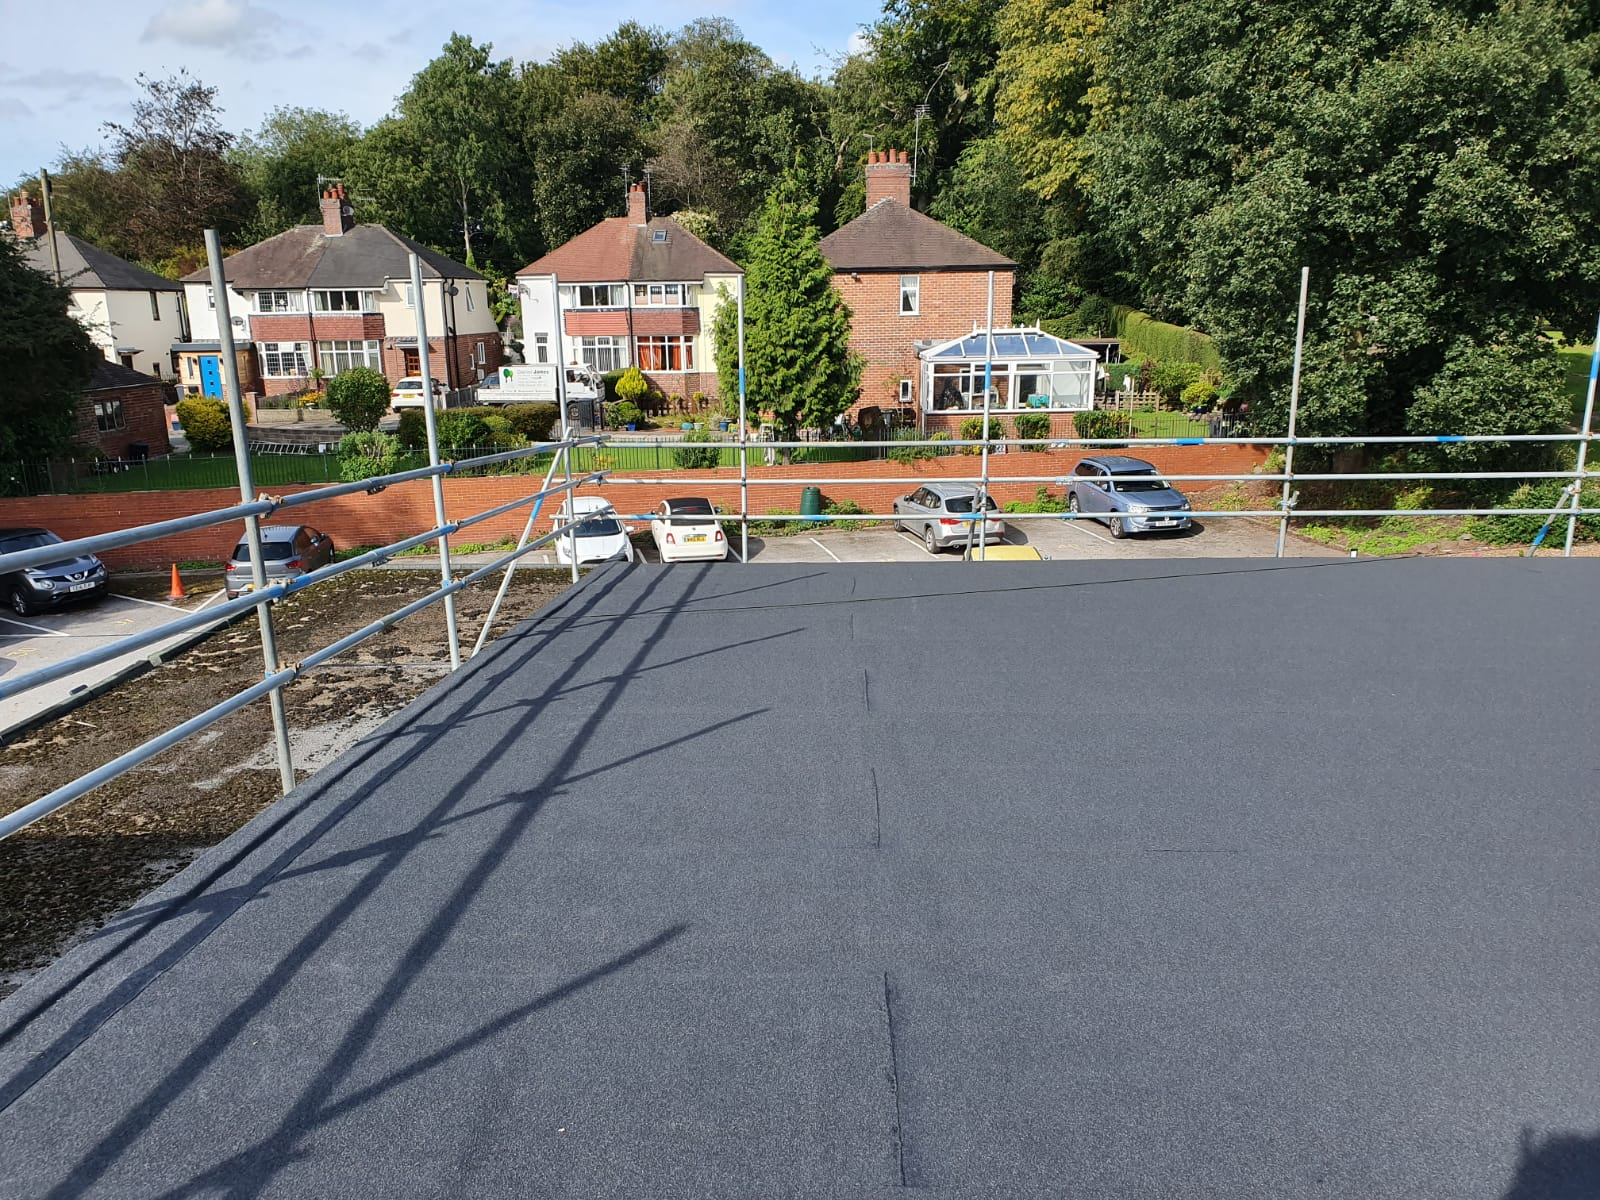 Leaking Flat Roof Repair Newcastle Under Lyme